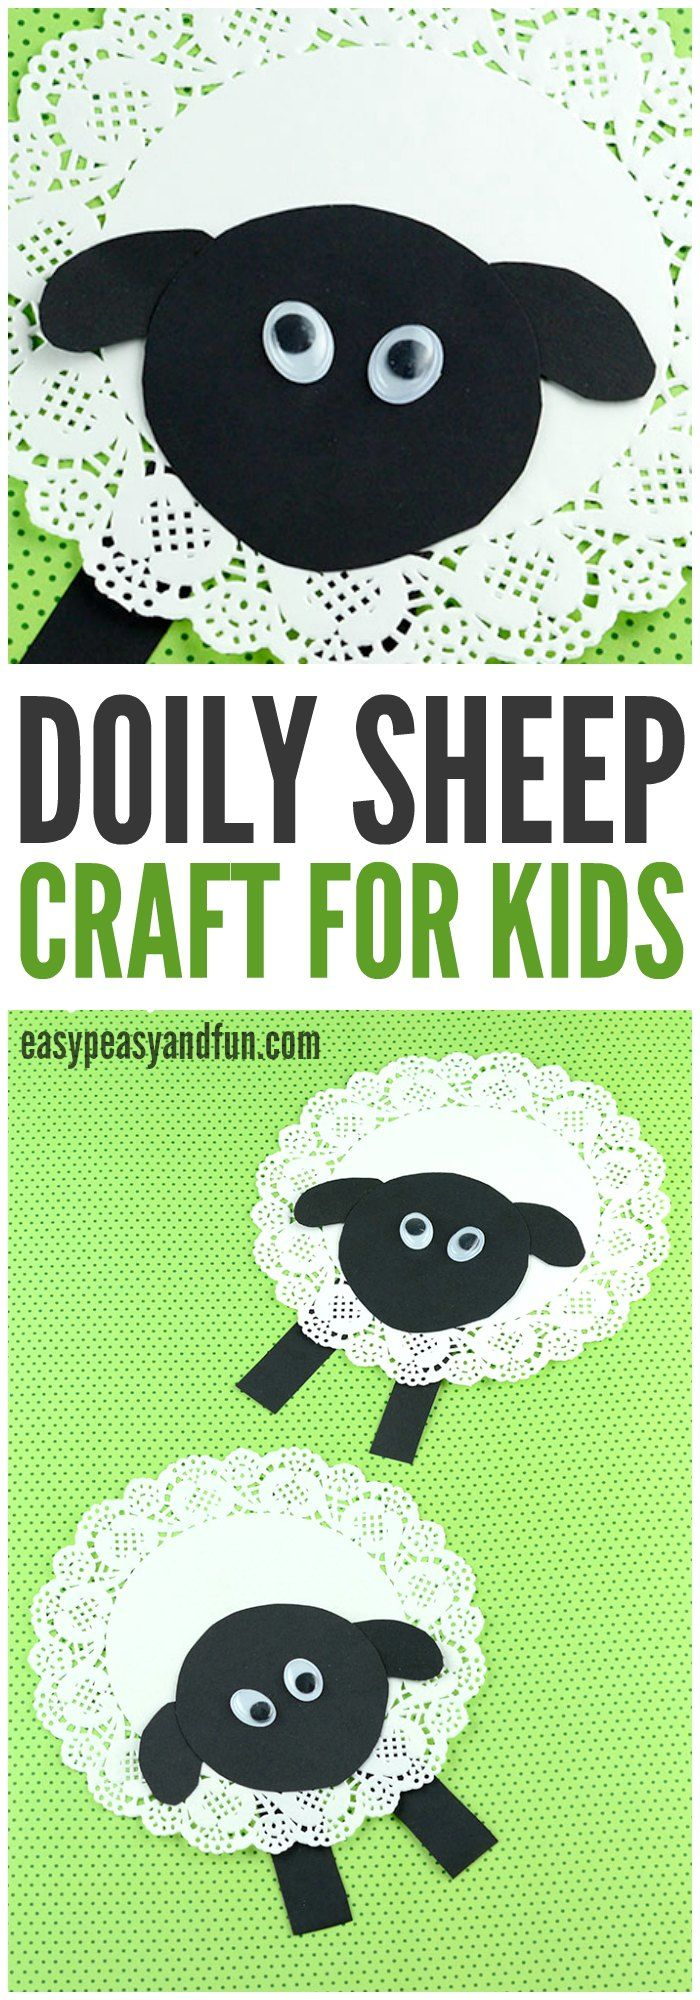 This would be a cute sensory craft with cotton glued onto center of doily - Use black felt for face, ears, legs